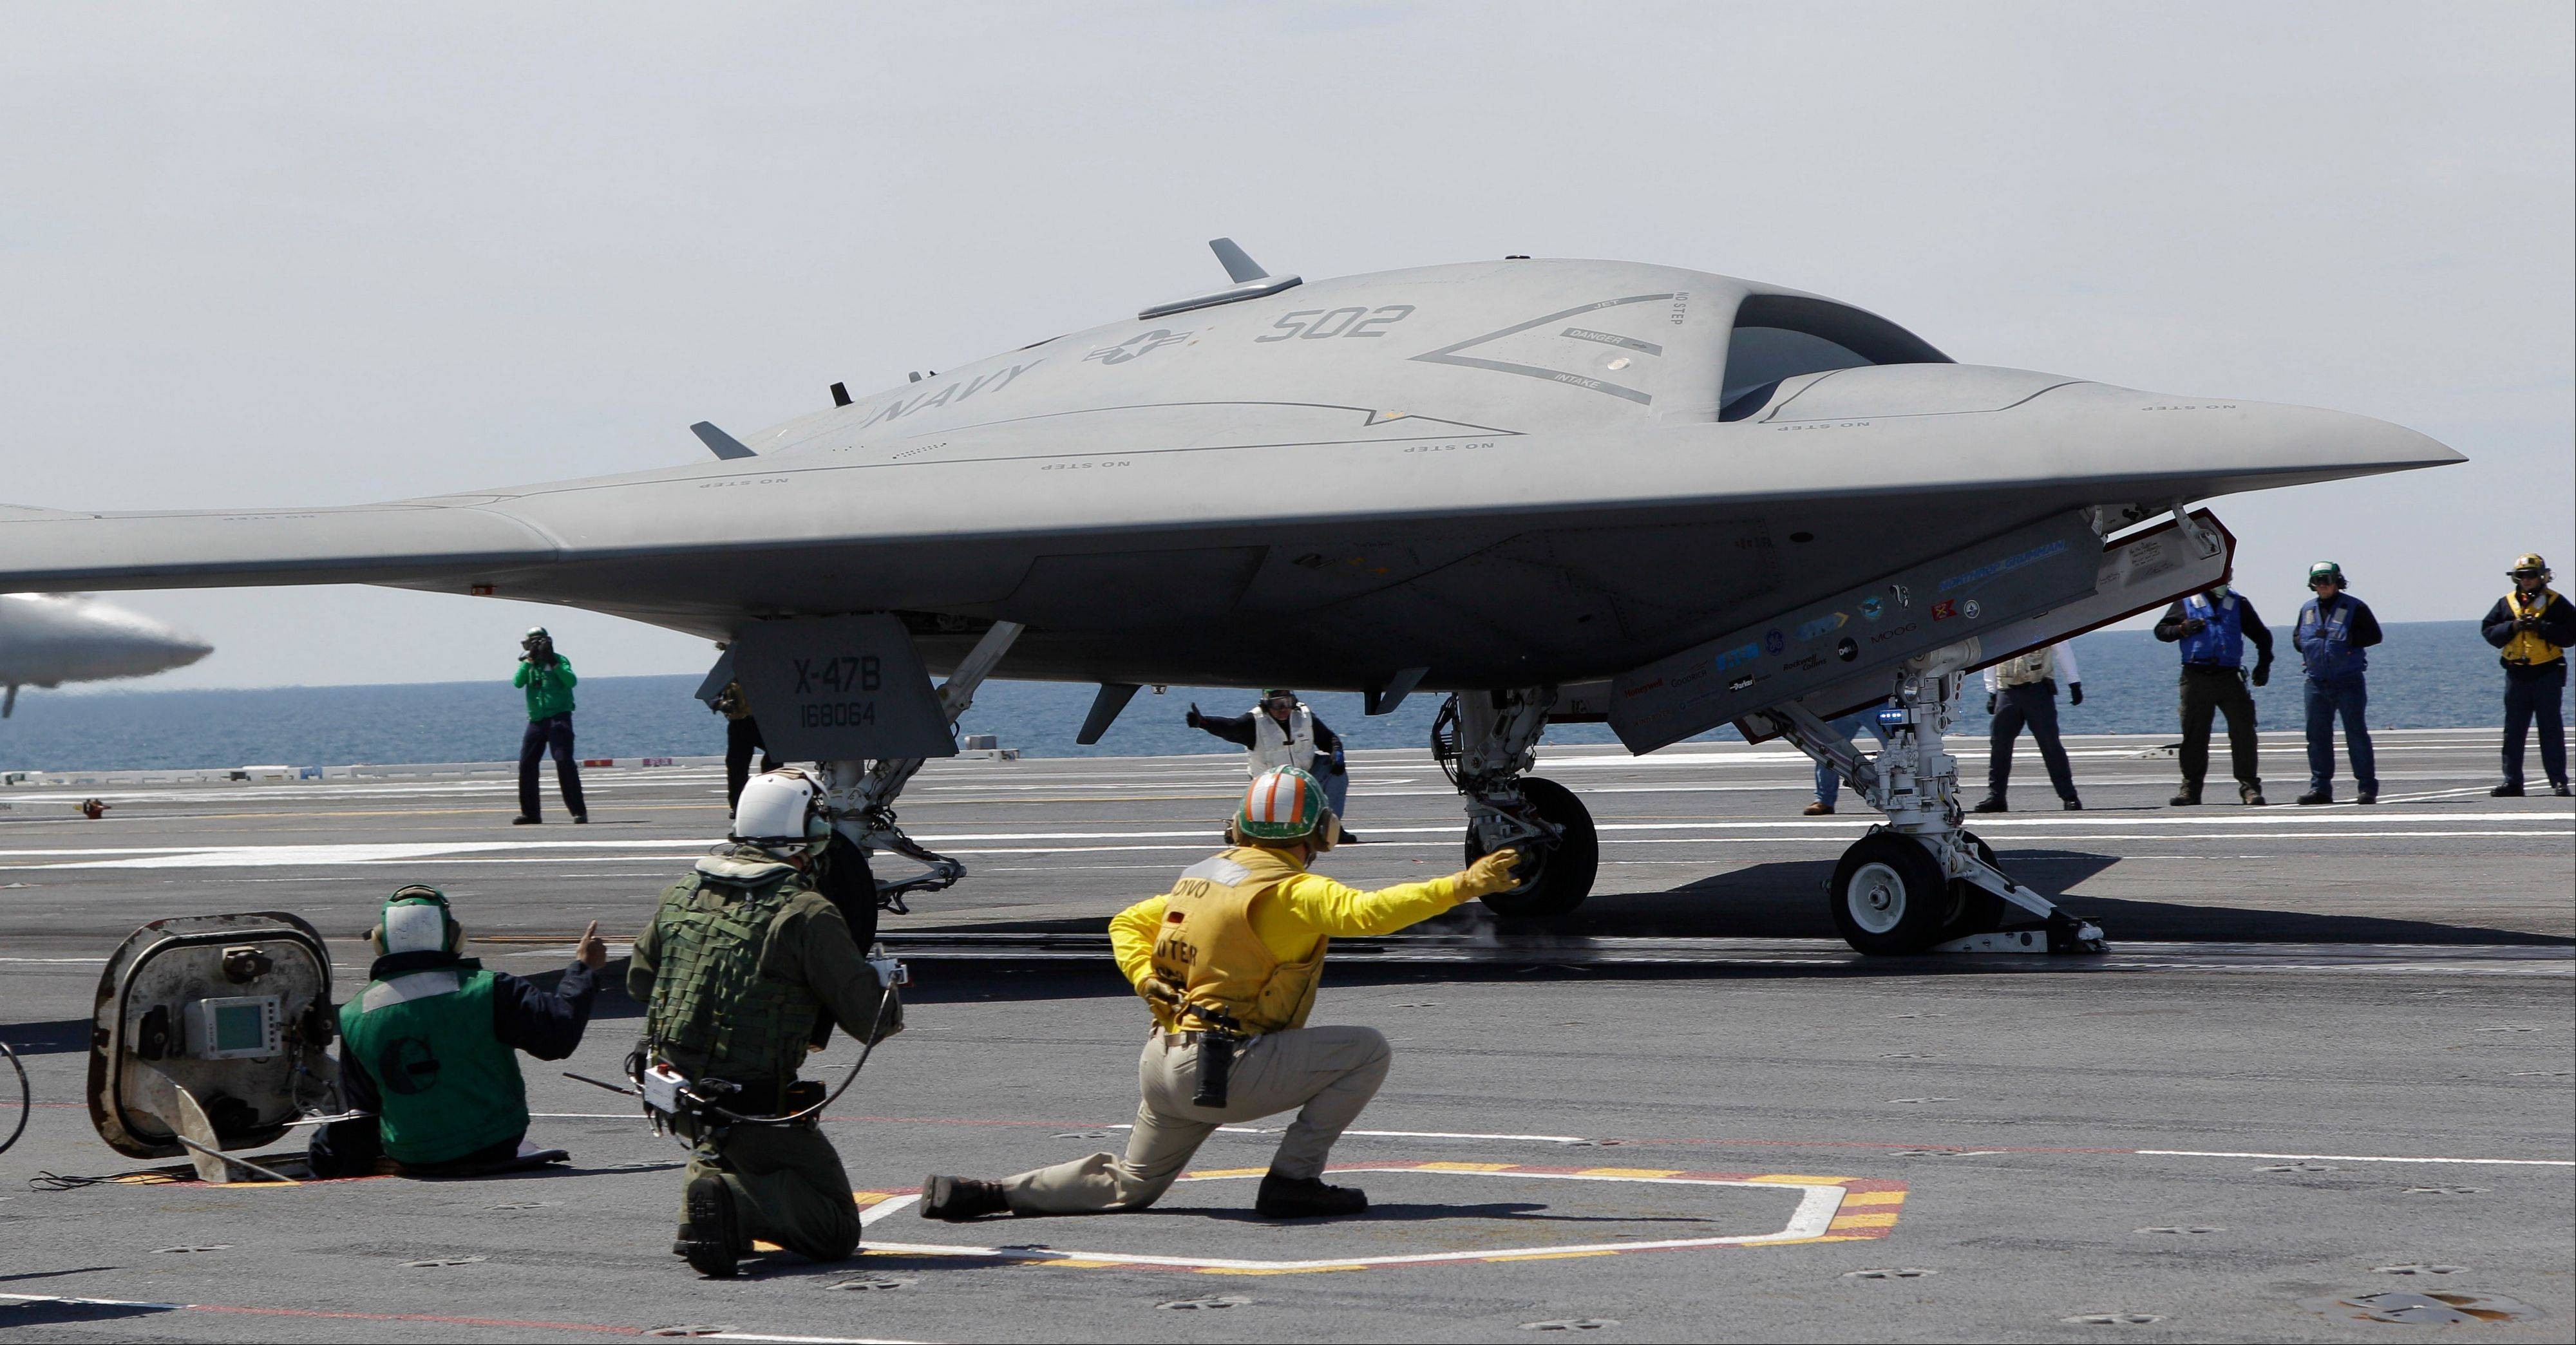 A Navy X-47B drone is launched off the nuclear powered aircraft carrier USS George H.W. Bush off the coast of Virginia on May 14, 2013. The X-47B experimental aircraft completed the first unmanned carrier landing aboard the USS George H.W. Bush on Wednesday July 10, 2013.